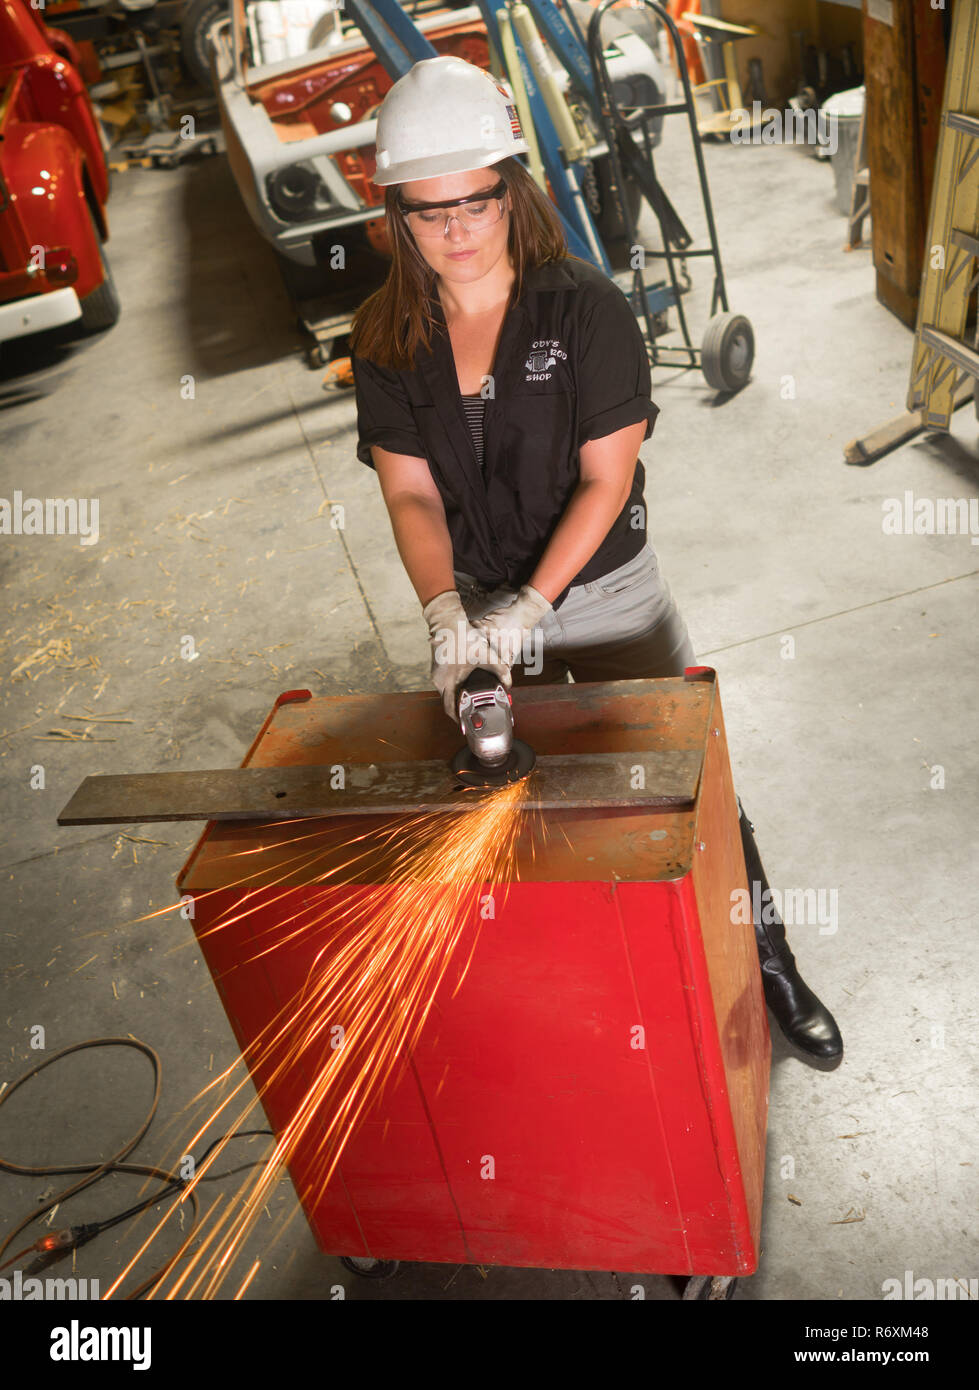 Sparks fly as this young woman grinds a piece of metal in the hot rod shop Stock Photo